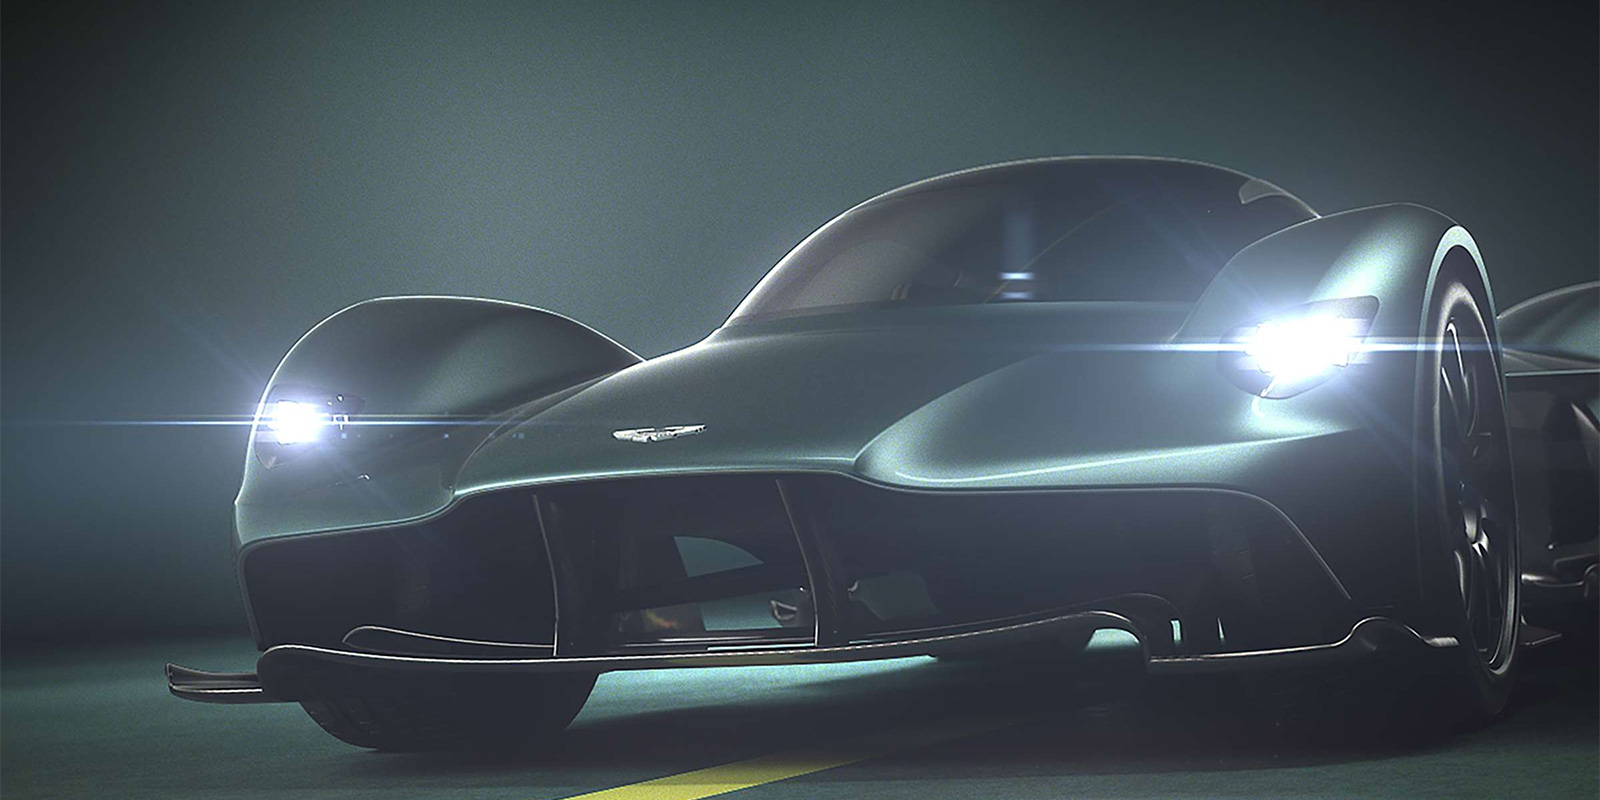 Aston Martin Valkyrie - Otherworldly Performance